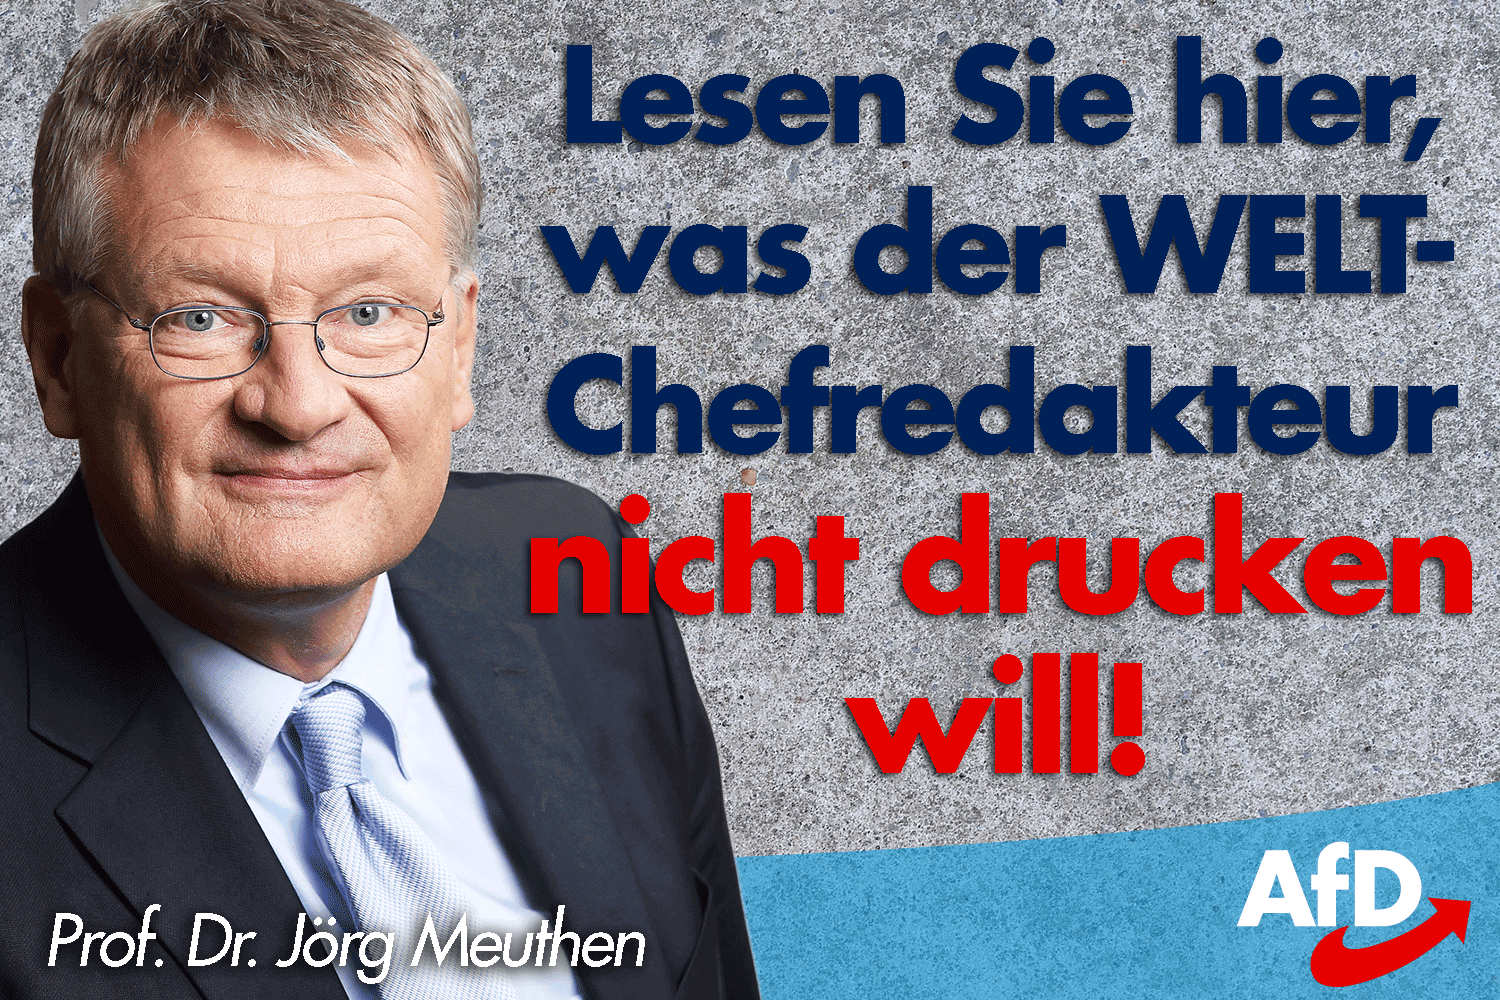 20180307 Meuthen Offener Brief